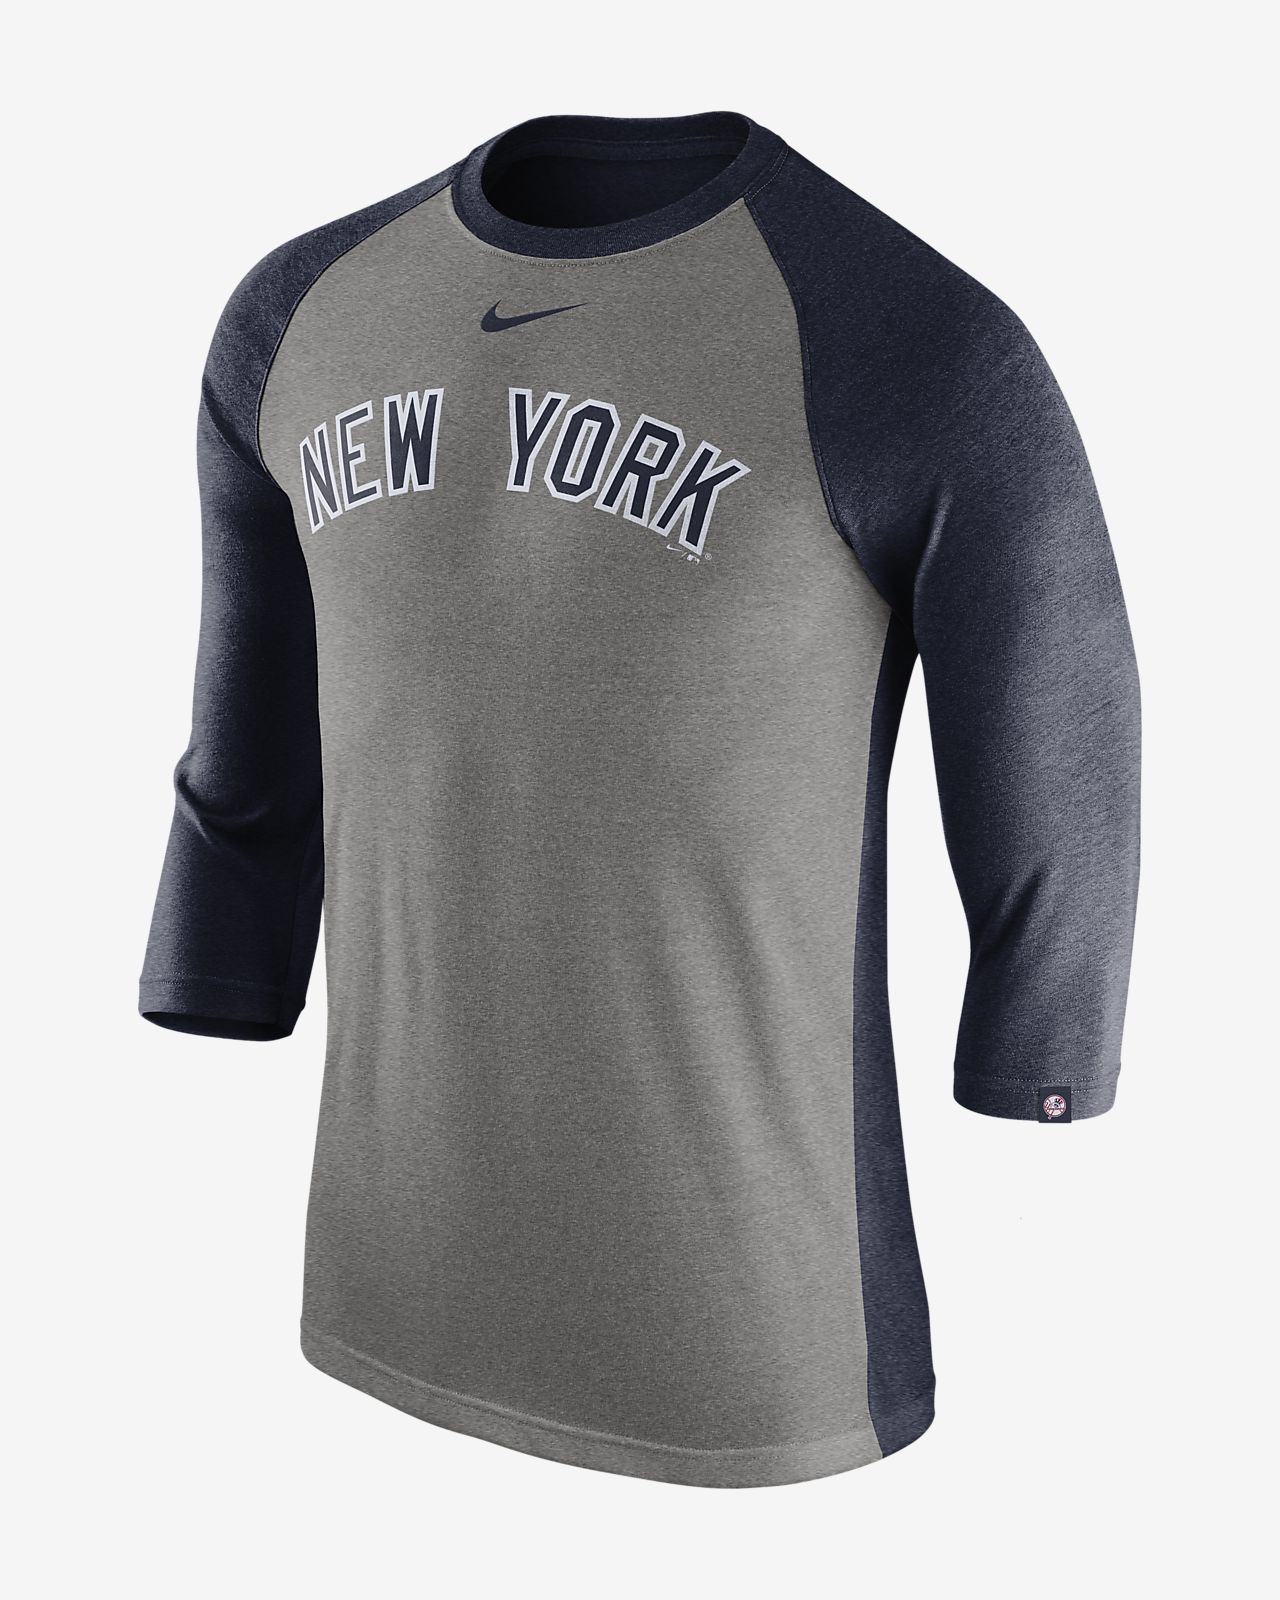 Nike Tri-Blend (MLB Yankees) Men s 3 4-Sleeve T-Shirt. Nike.com 2c3fa2964af